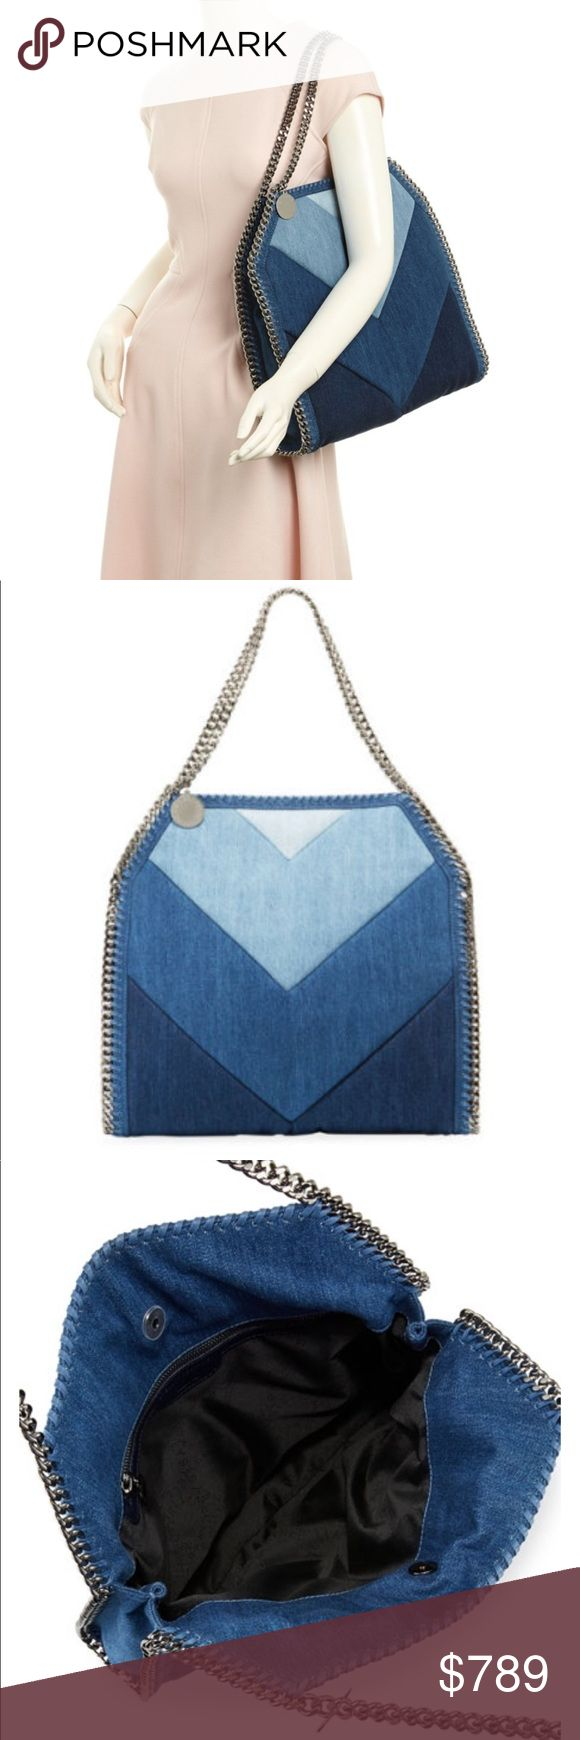 "NEW & AUTH. STELLA MCCARTNEY DENIM CHEVRON TOTE ✨COMING SOON✨Stella McCartney denim tote bag in chevron print with curb chain trim. Silvertone hardware. Chain shoulder straps, 8.3"" drop. Open top with snap closure. Exterior, hanging logo charm. Interior, one zip pocket. 14""H x 15""W x 3""D. Weighs 1 lb. 13.7 oz. Made in Italy. Stella McCartney Bags Totes"